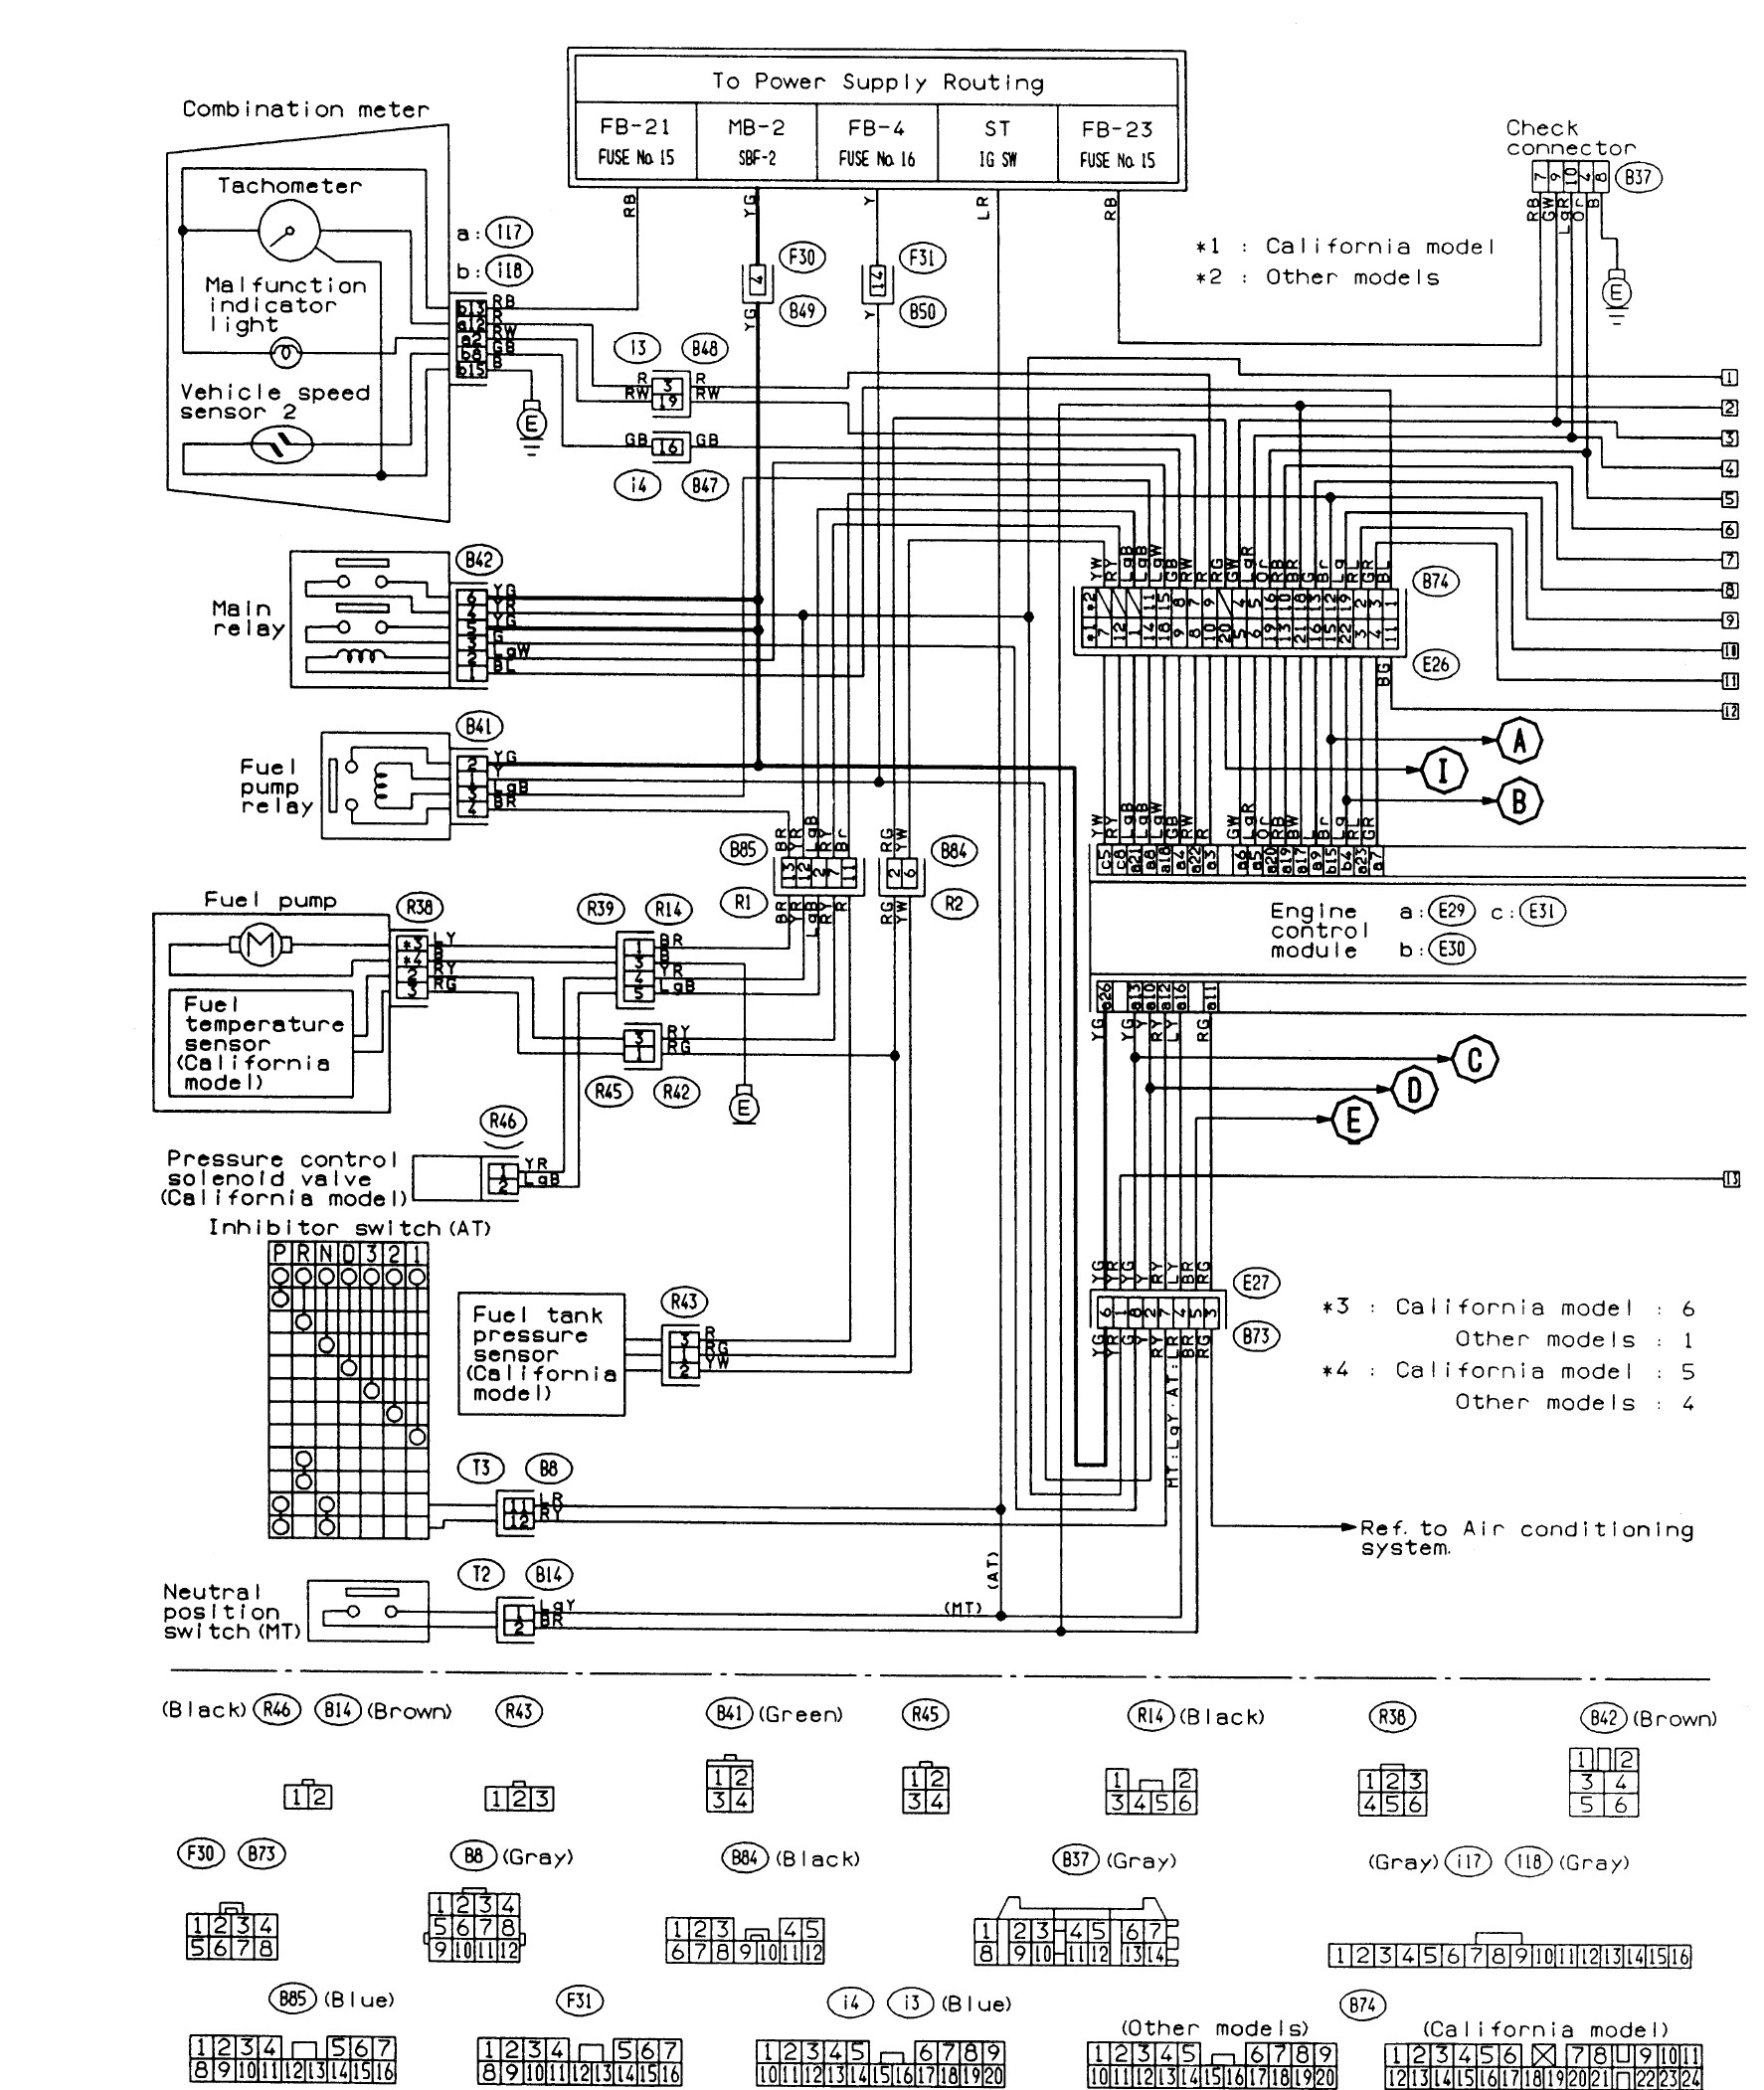 2001 Camaro Wiring Harness Diagram Will Be A Thing Subaru Forester Sensor Services 2000 Automotive